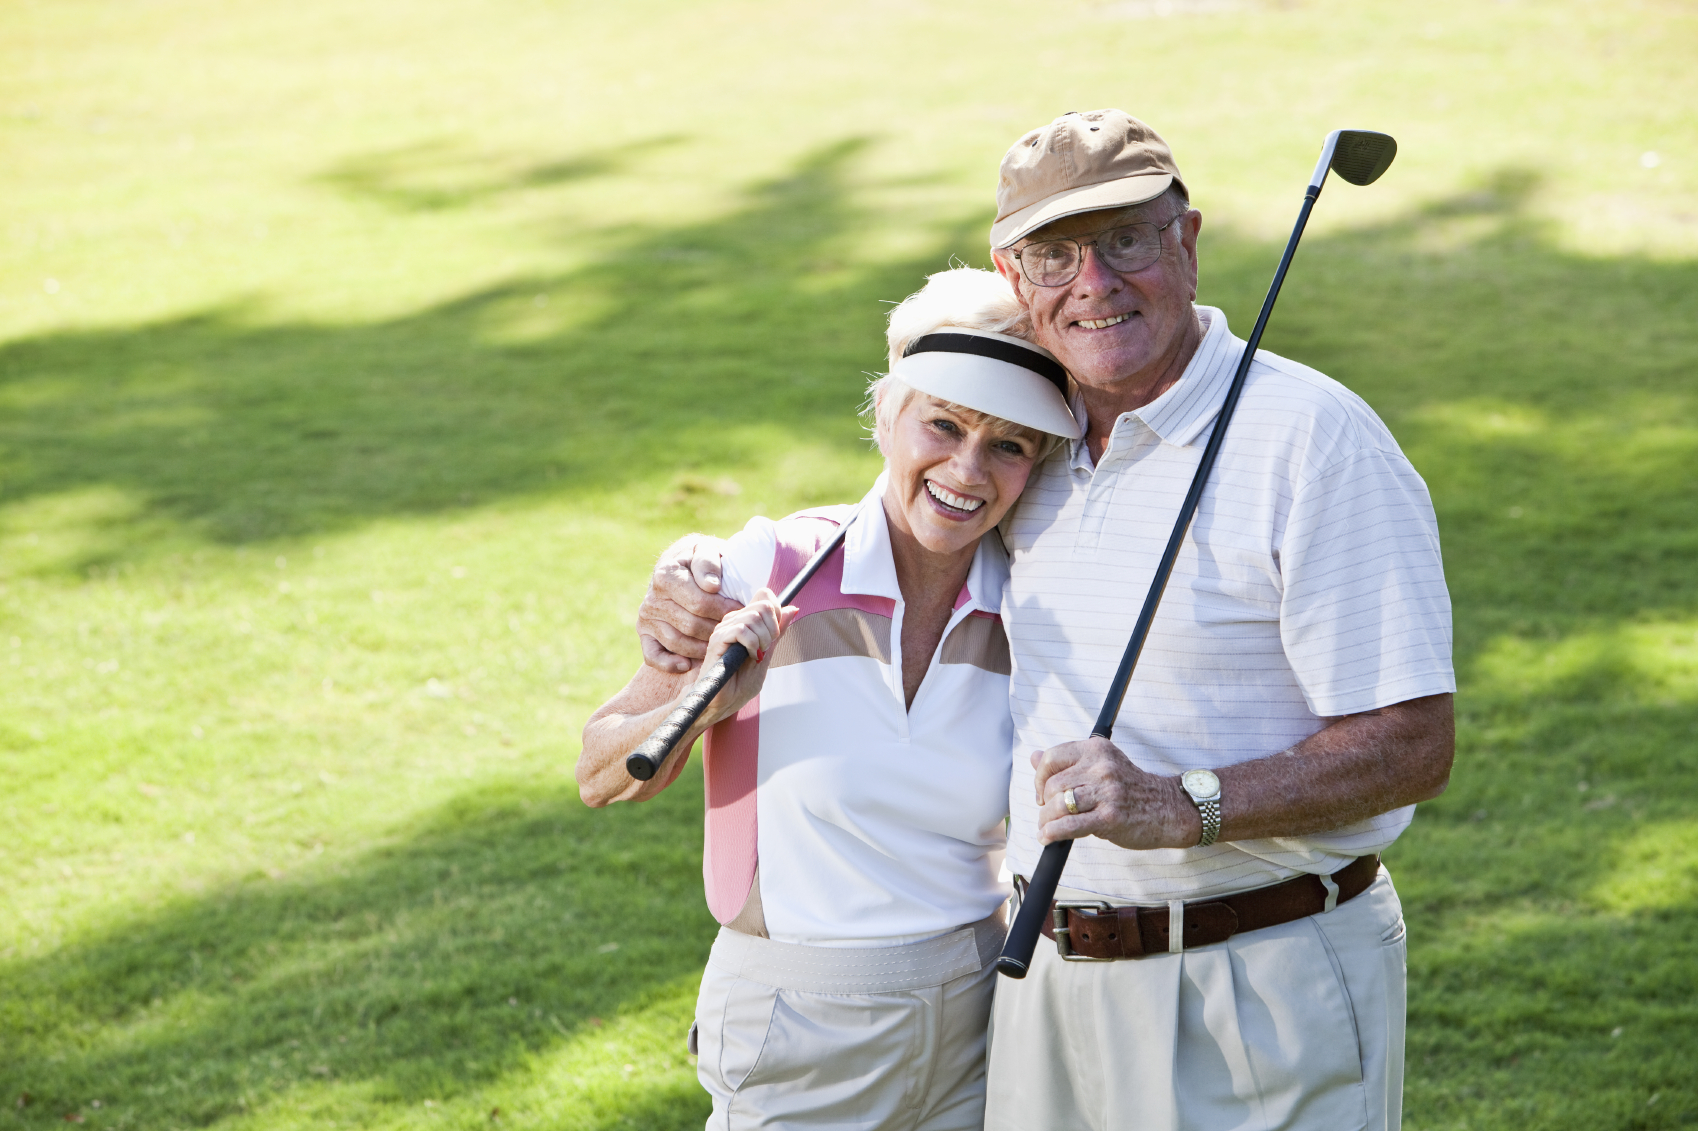 Mature Couple Sitting In Golf Buggy On Golf Course, Man